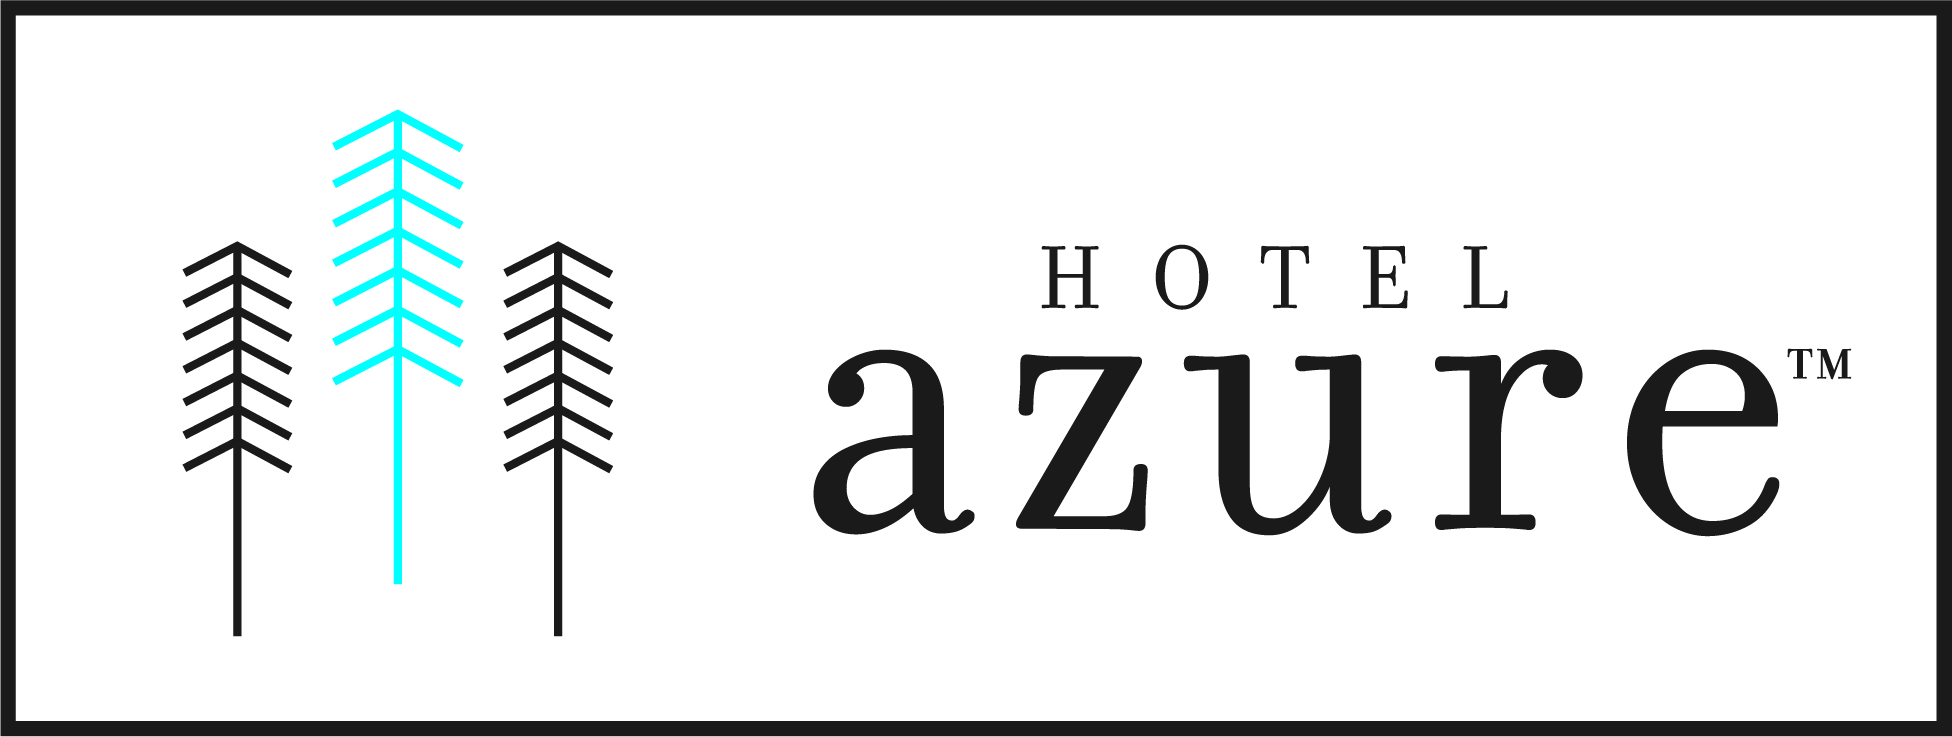 """f you are looking to stay close to this event """"Hotel Azure"""" is available for a discounted rate. If you wish to use this option and want to book online at :  online : www.hotelazuretahoe.com  Promo code :MC2019  Or call and make reservations at 1(800)877-1466  Distance from Lake Tahoe Christian Fellowship is 1 mile away, about a 3 min drive."""